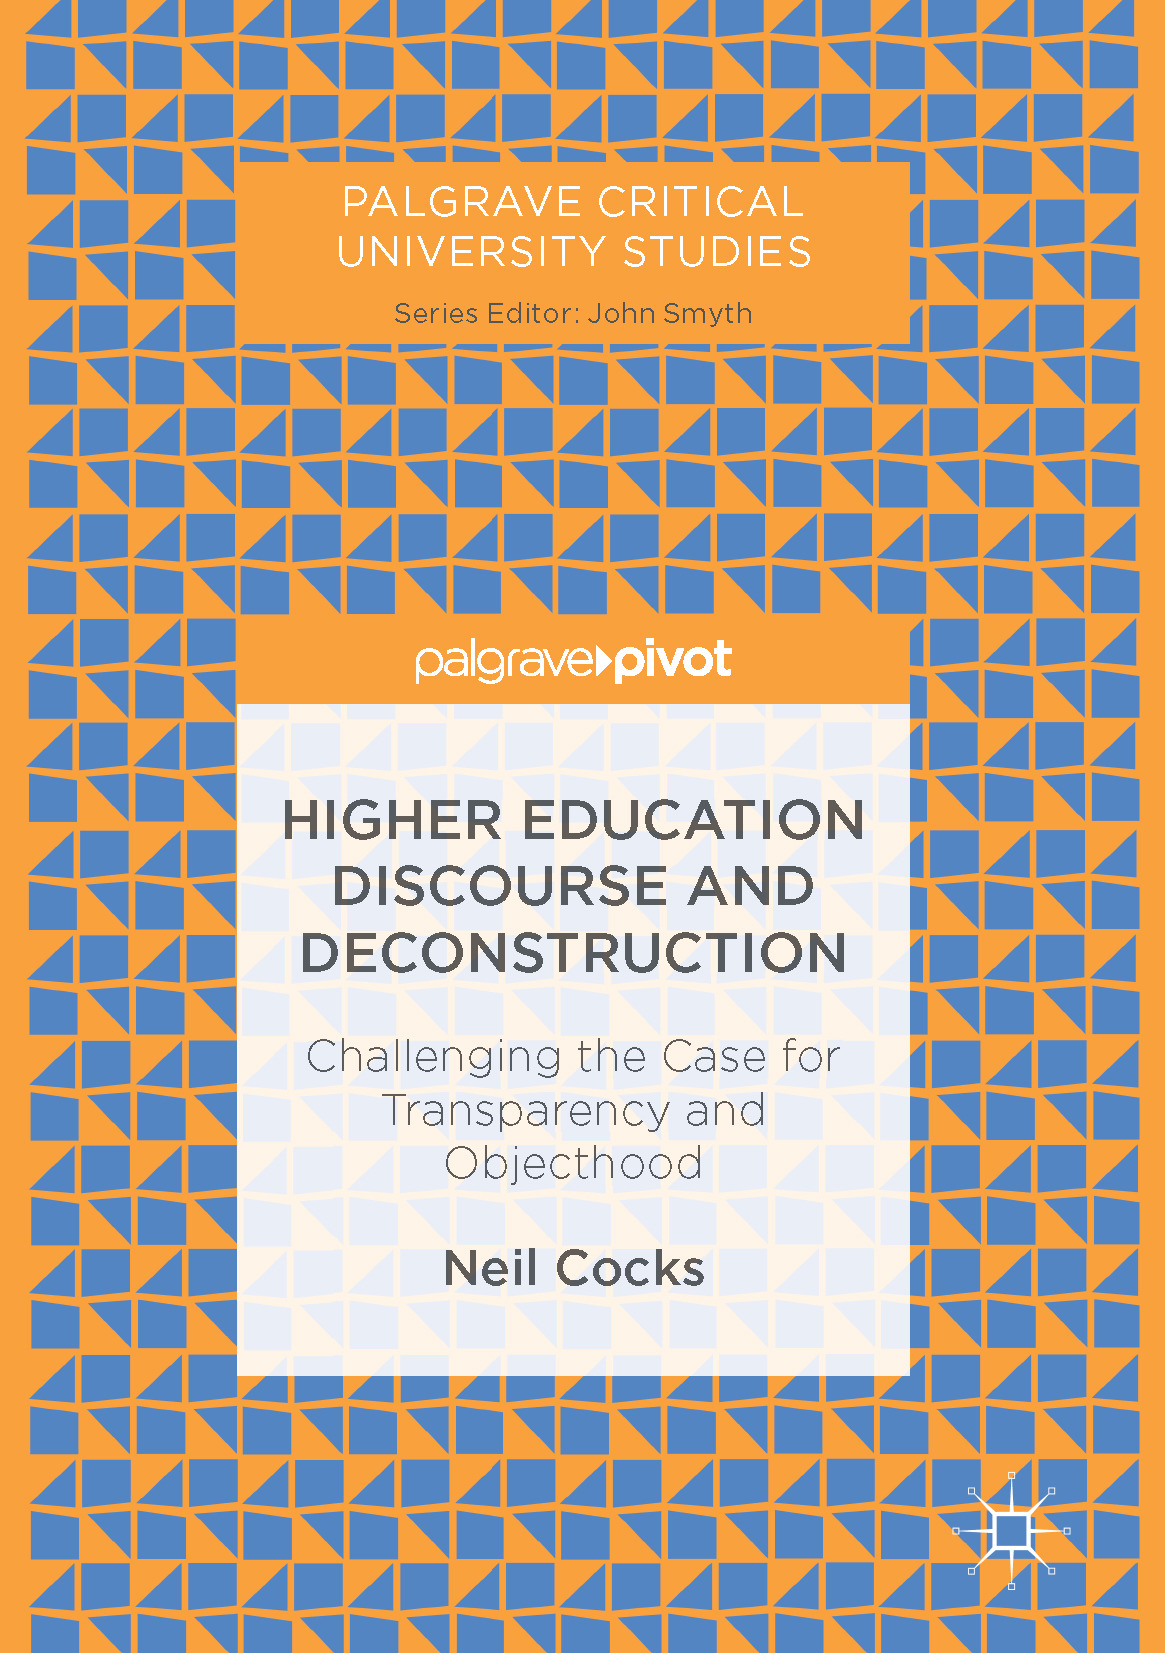 Cocks, Neil - Higher Education Discourse and Deconstruction, ebook